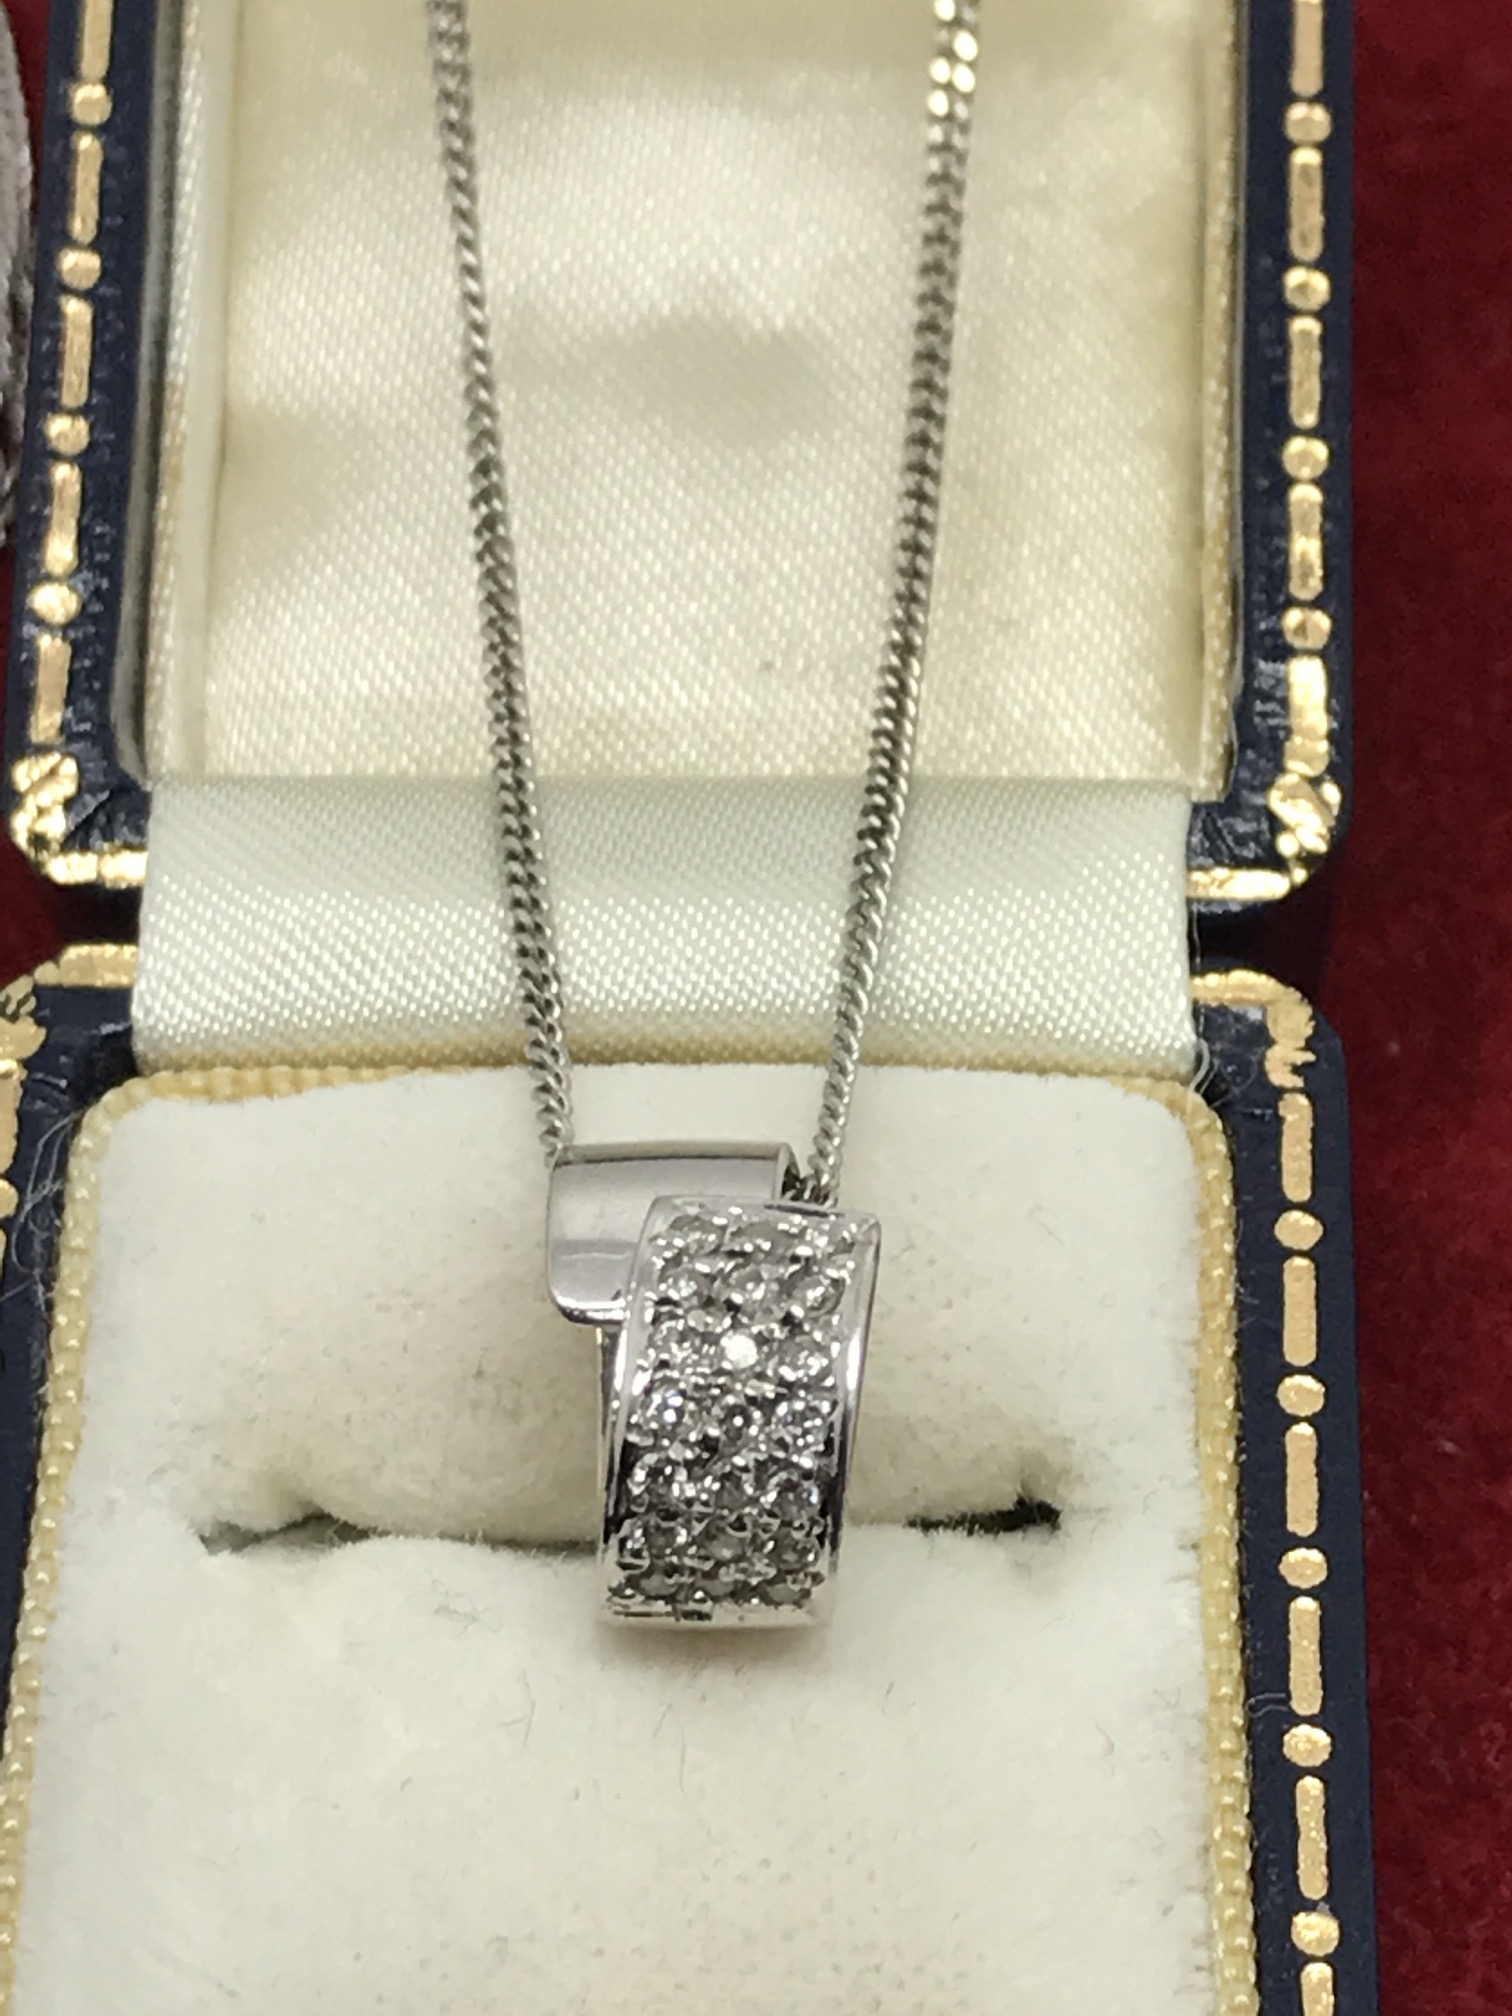 Lot 27 - 18ct WHITE GOLD DIAMOND PENDANT & CHAIN